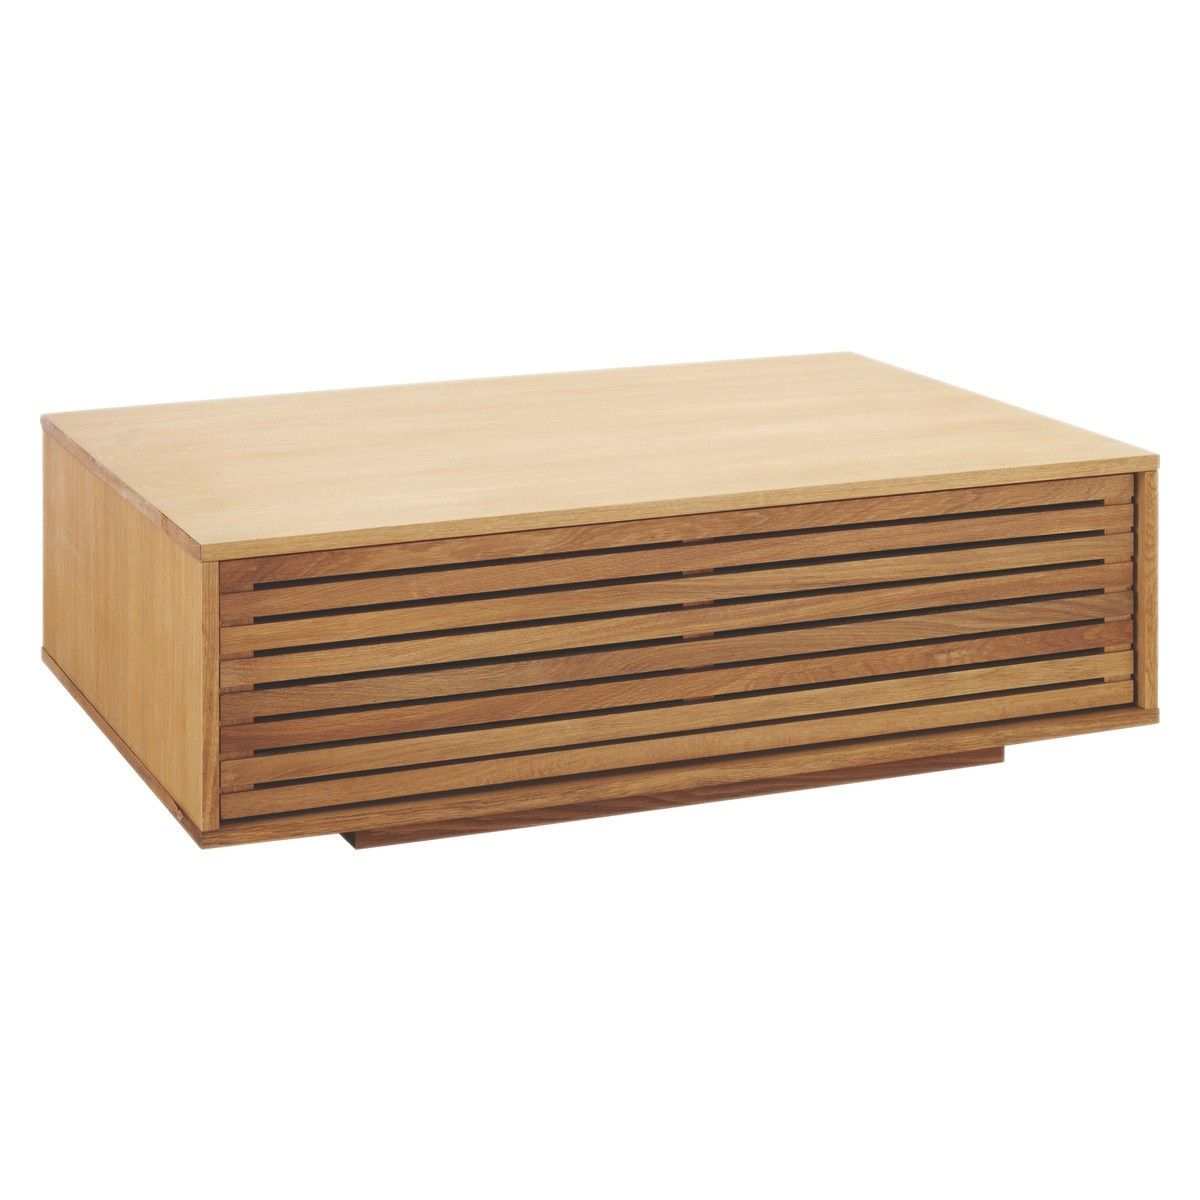 Max Oiled Solid Oak Coffee Table With Internal Storage Oak intended for size 1200 X 1200